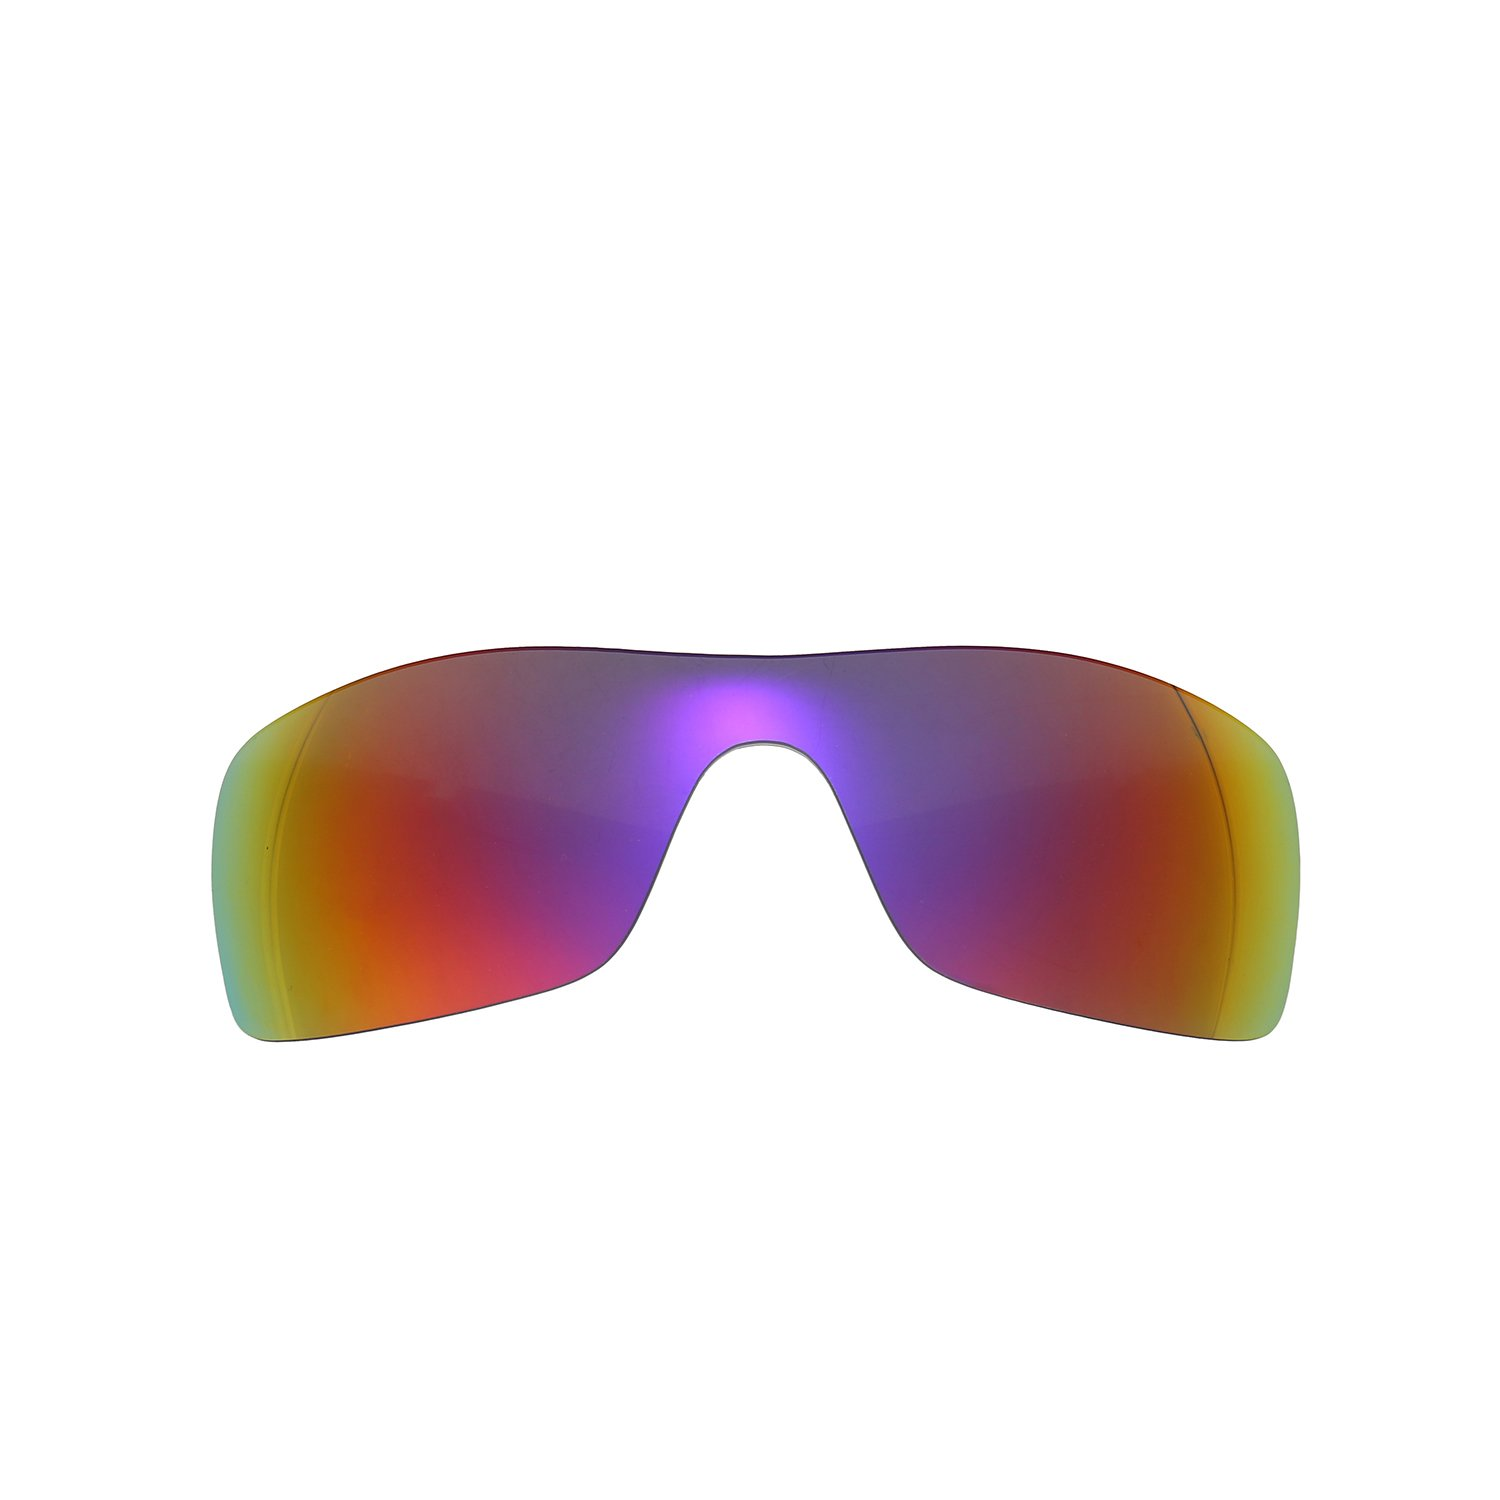 a3a4e36275f Amazon.com  Polarized Replacement Lenses for Oakley Batwolf Sunglasses ( Midnight Sun) NicelyFit  Clothing